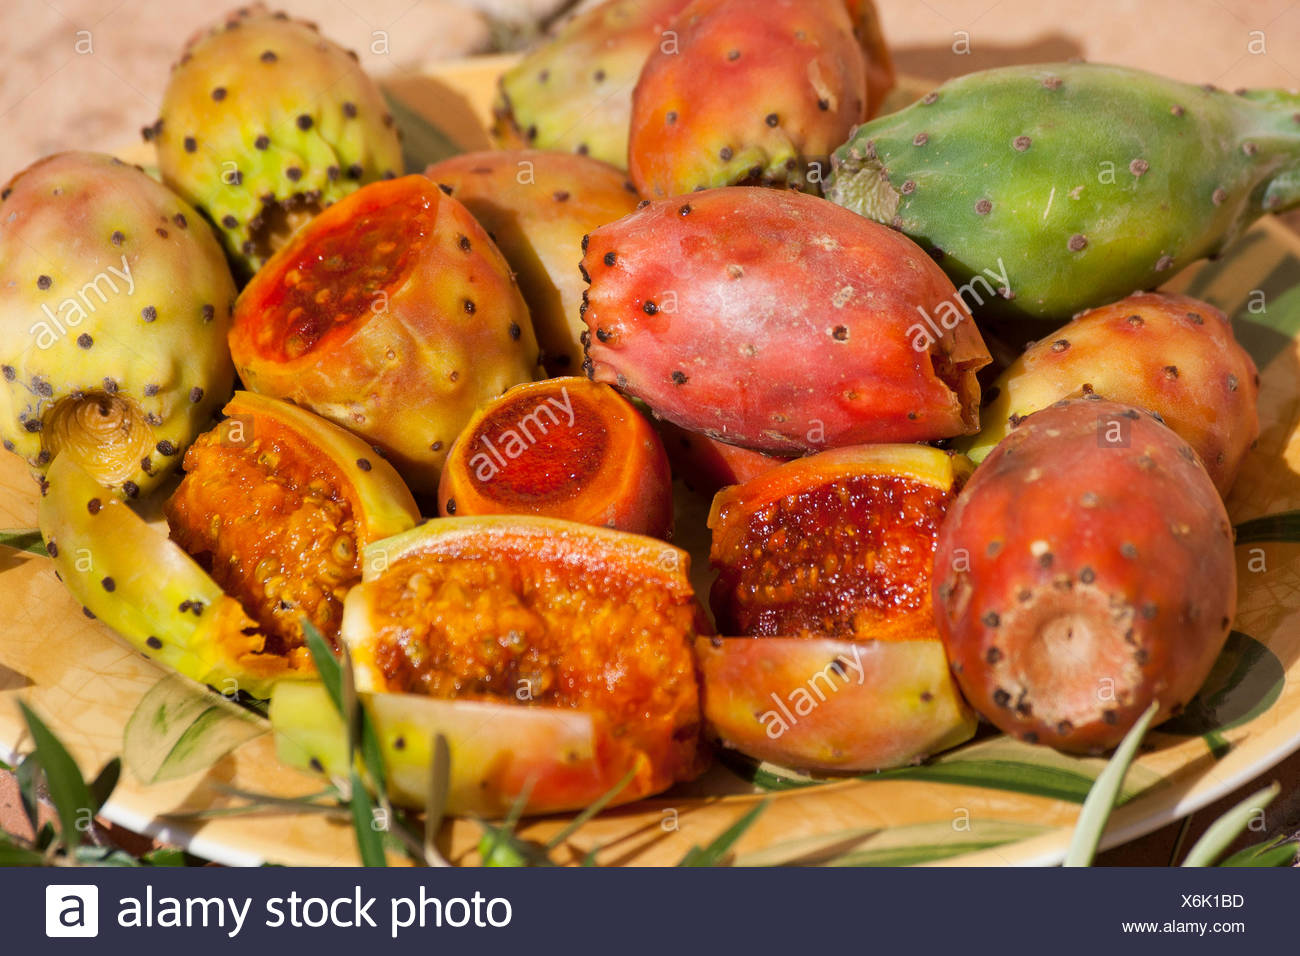 Indian fig, cactus pear (Opuntia ficus-indica, Opuntia ficus-barbarica), fresh fruits in a bowl, France, Corsica - Stock Image